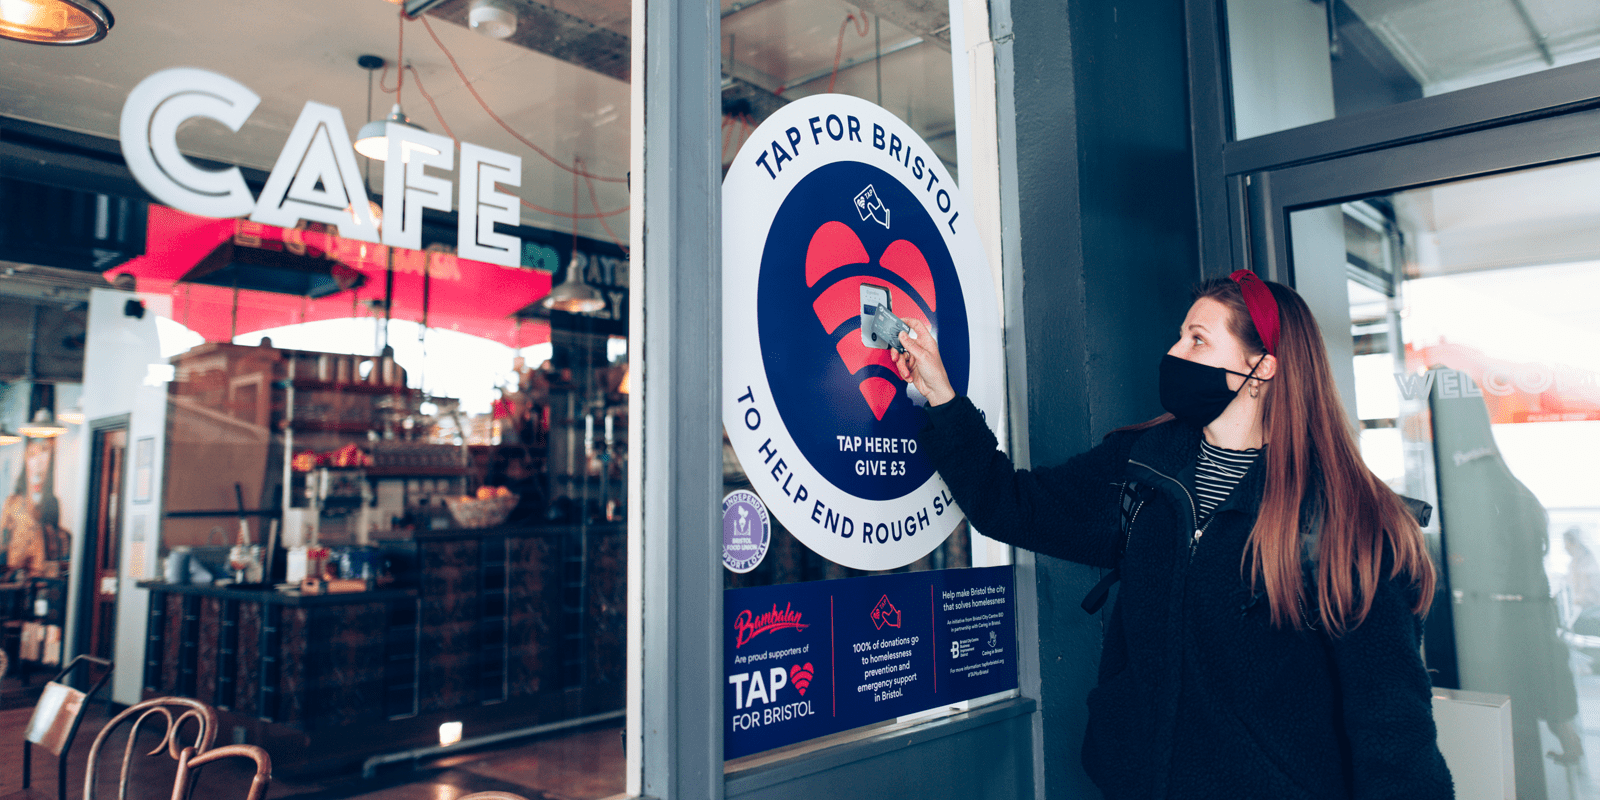 Woman tapping her credit card at a charity point on a bar window